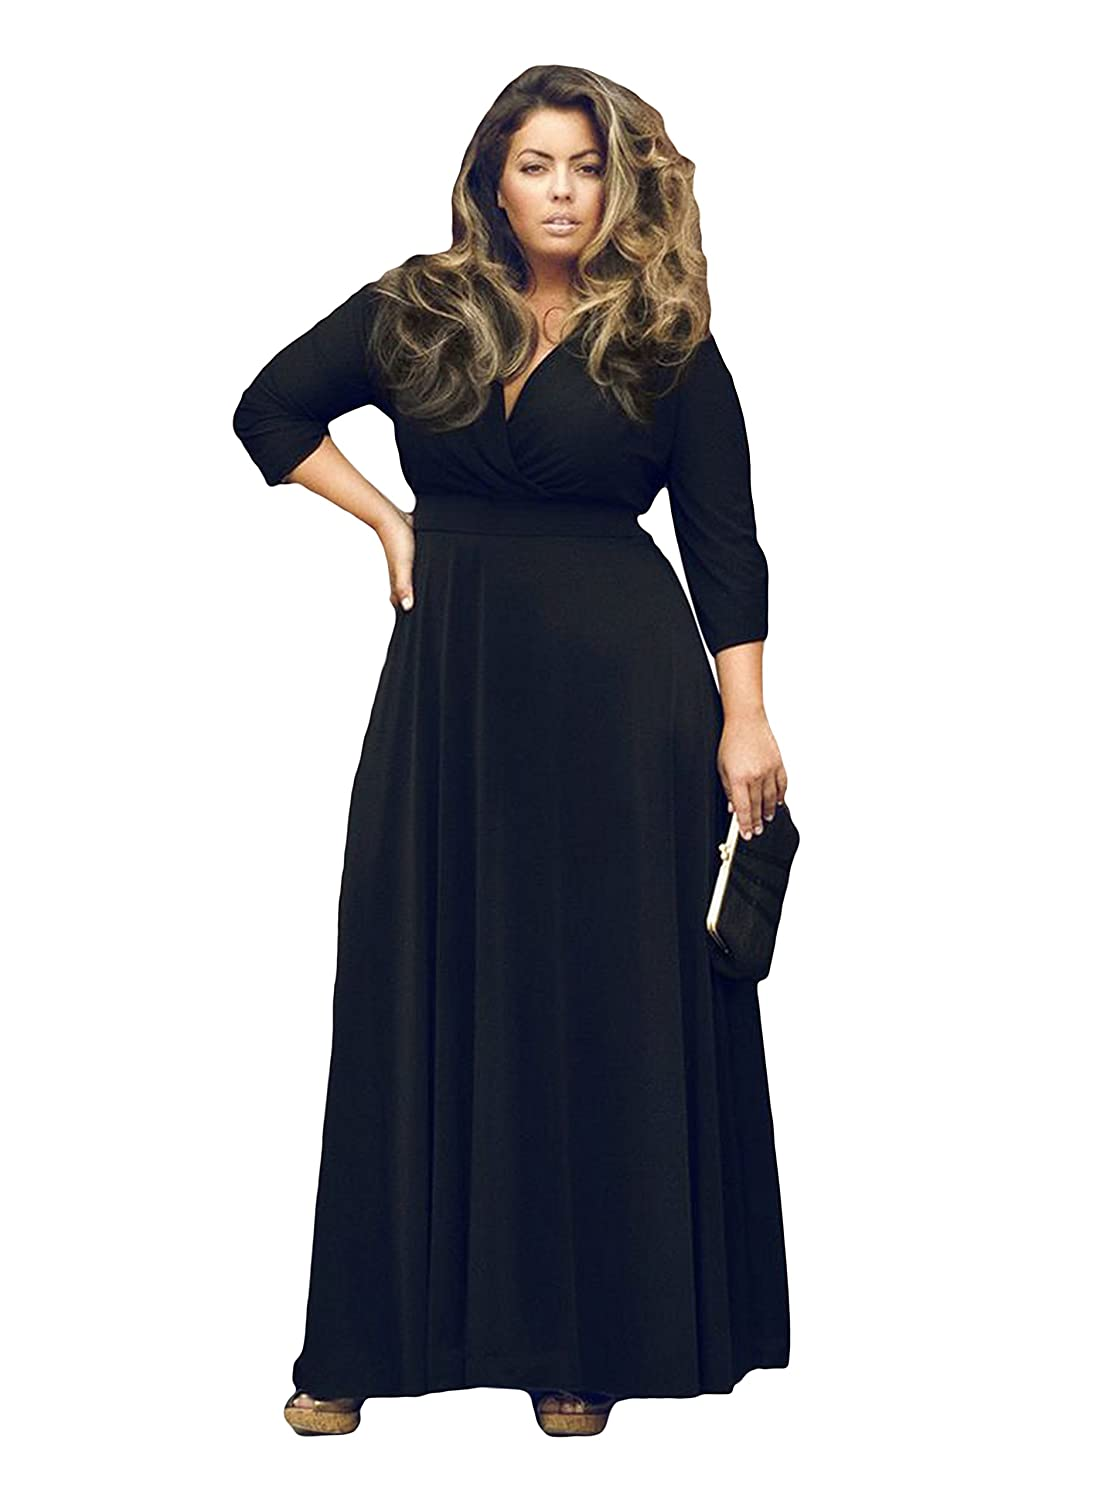 e4e987f0c634b Tankoo Women s V Neck 3 4 Sleeve Cocktail Plus Size Maxi Dress Good  quality